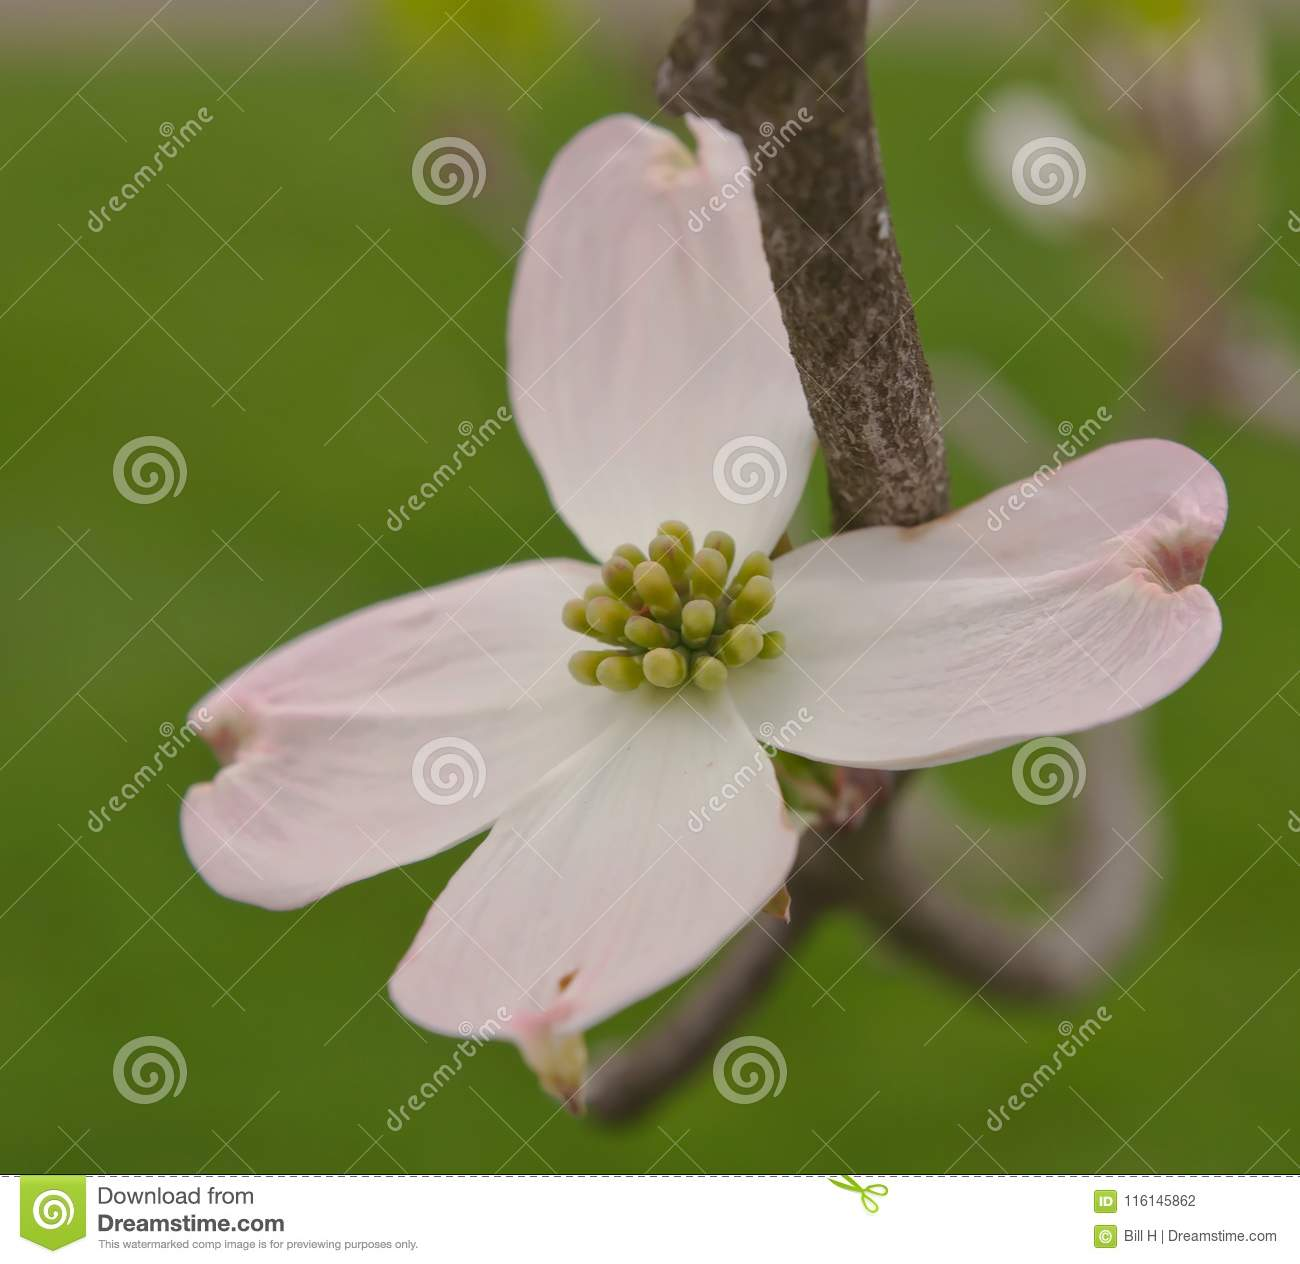 A White And Pink Dogwood Flower With A Green Background Stock Photo